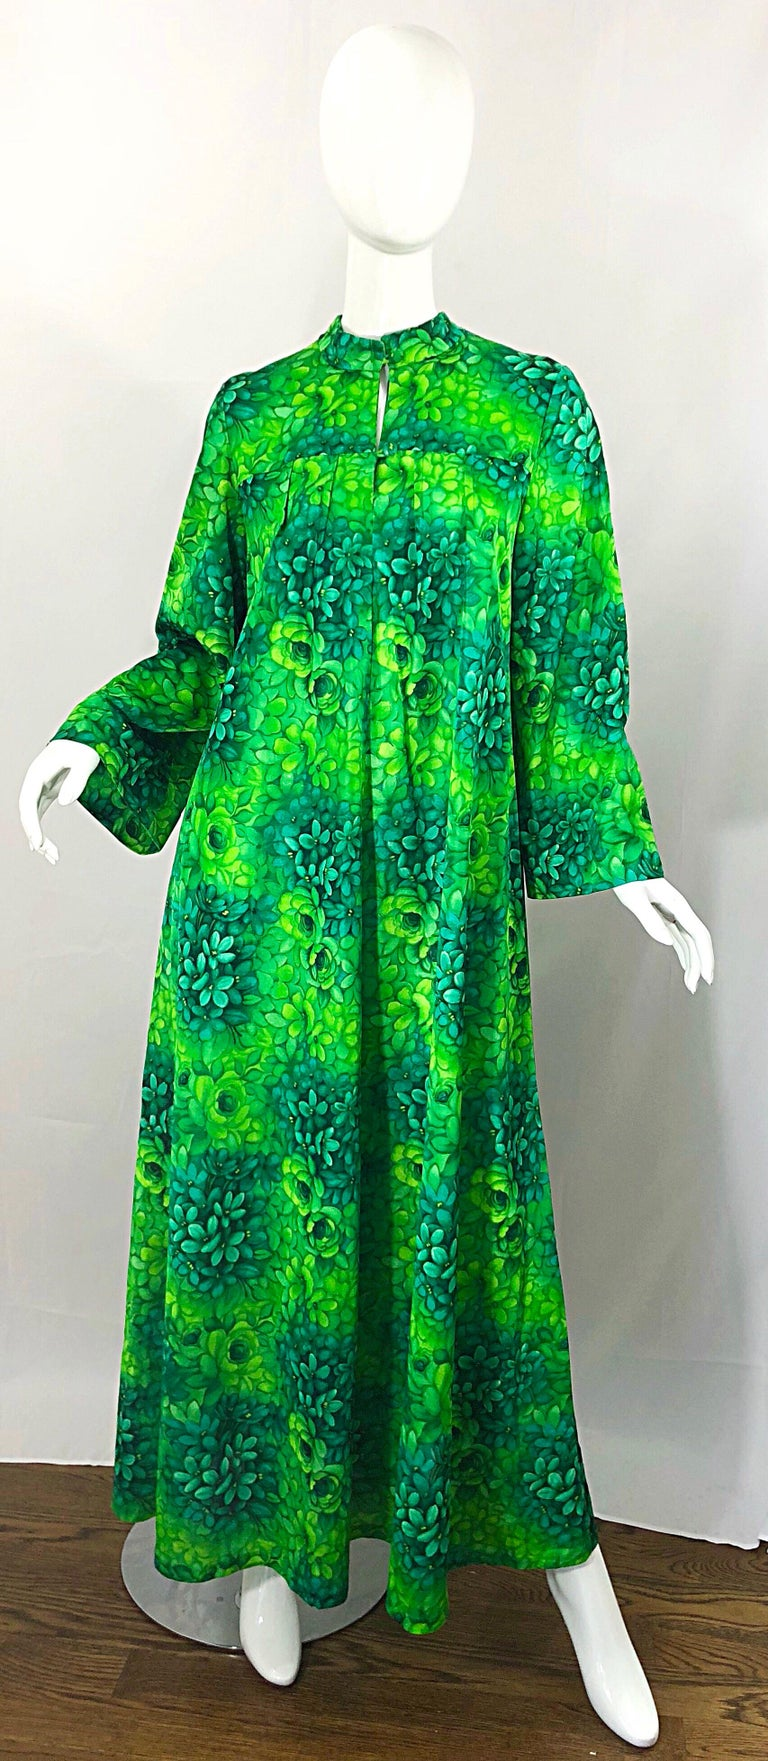 Amazing 1970s neon lime green and kelly green abstract flower print caftan maxi dress! Features vibrant shades of green throughout. Buttons up at the neck. Simply slips over the head. Can easily be dressed up or down, belted or alone. Perfect fo